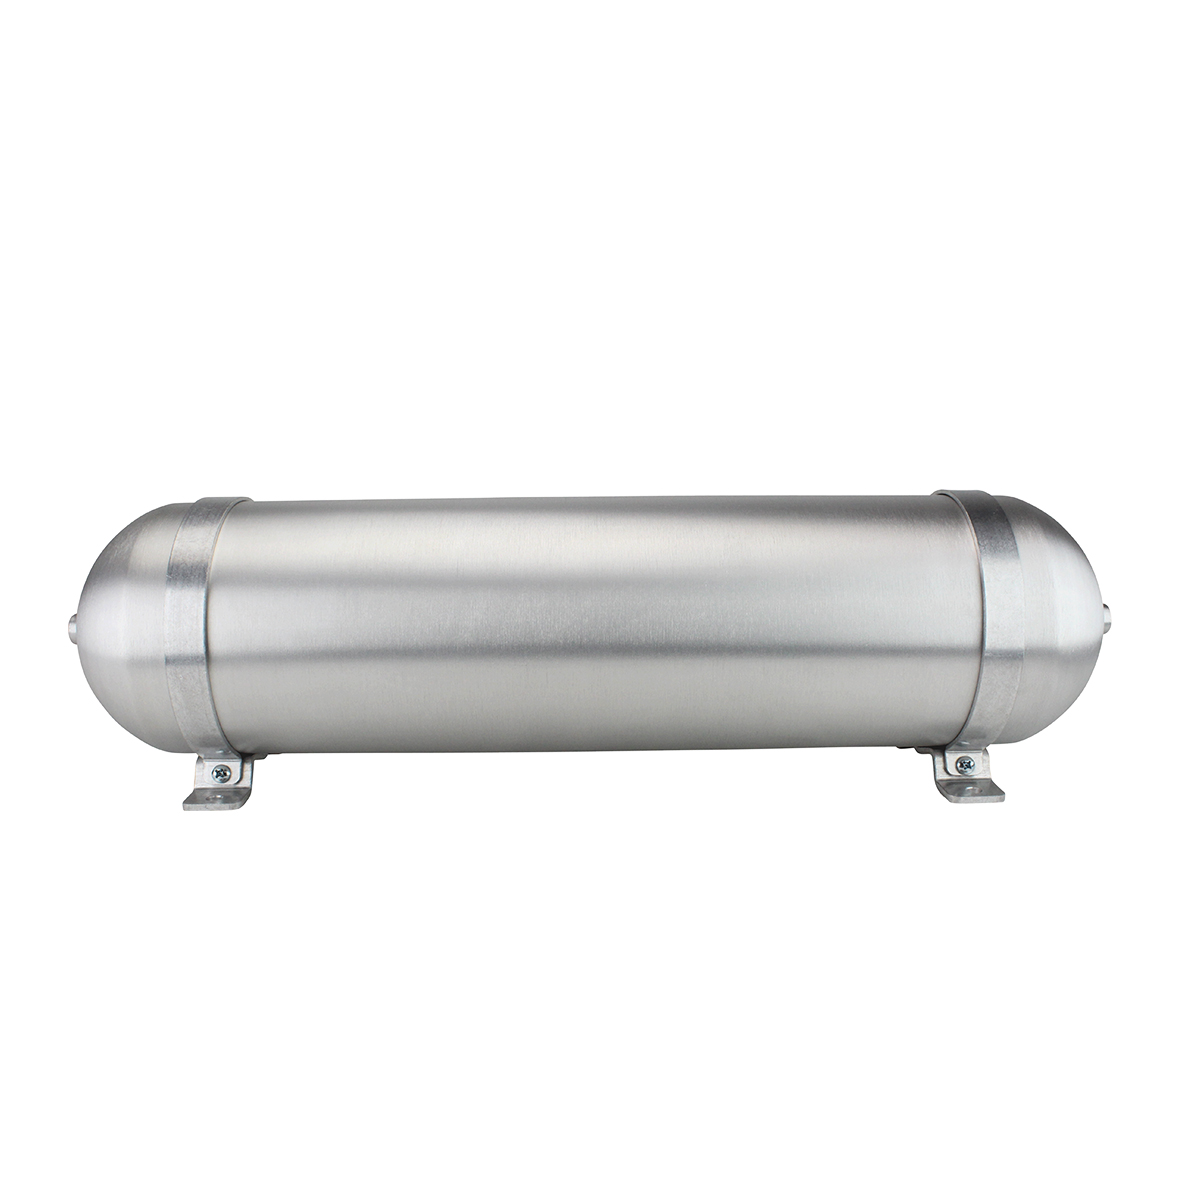 "SA624038-01 Seamless Tanks Aluminum Air Tank 24"" Length 6.625"" Diameter, (4) 3/8"" ports (1) 1/4"" Port, 200psi Rated, 2.89 Gallons"